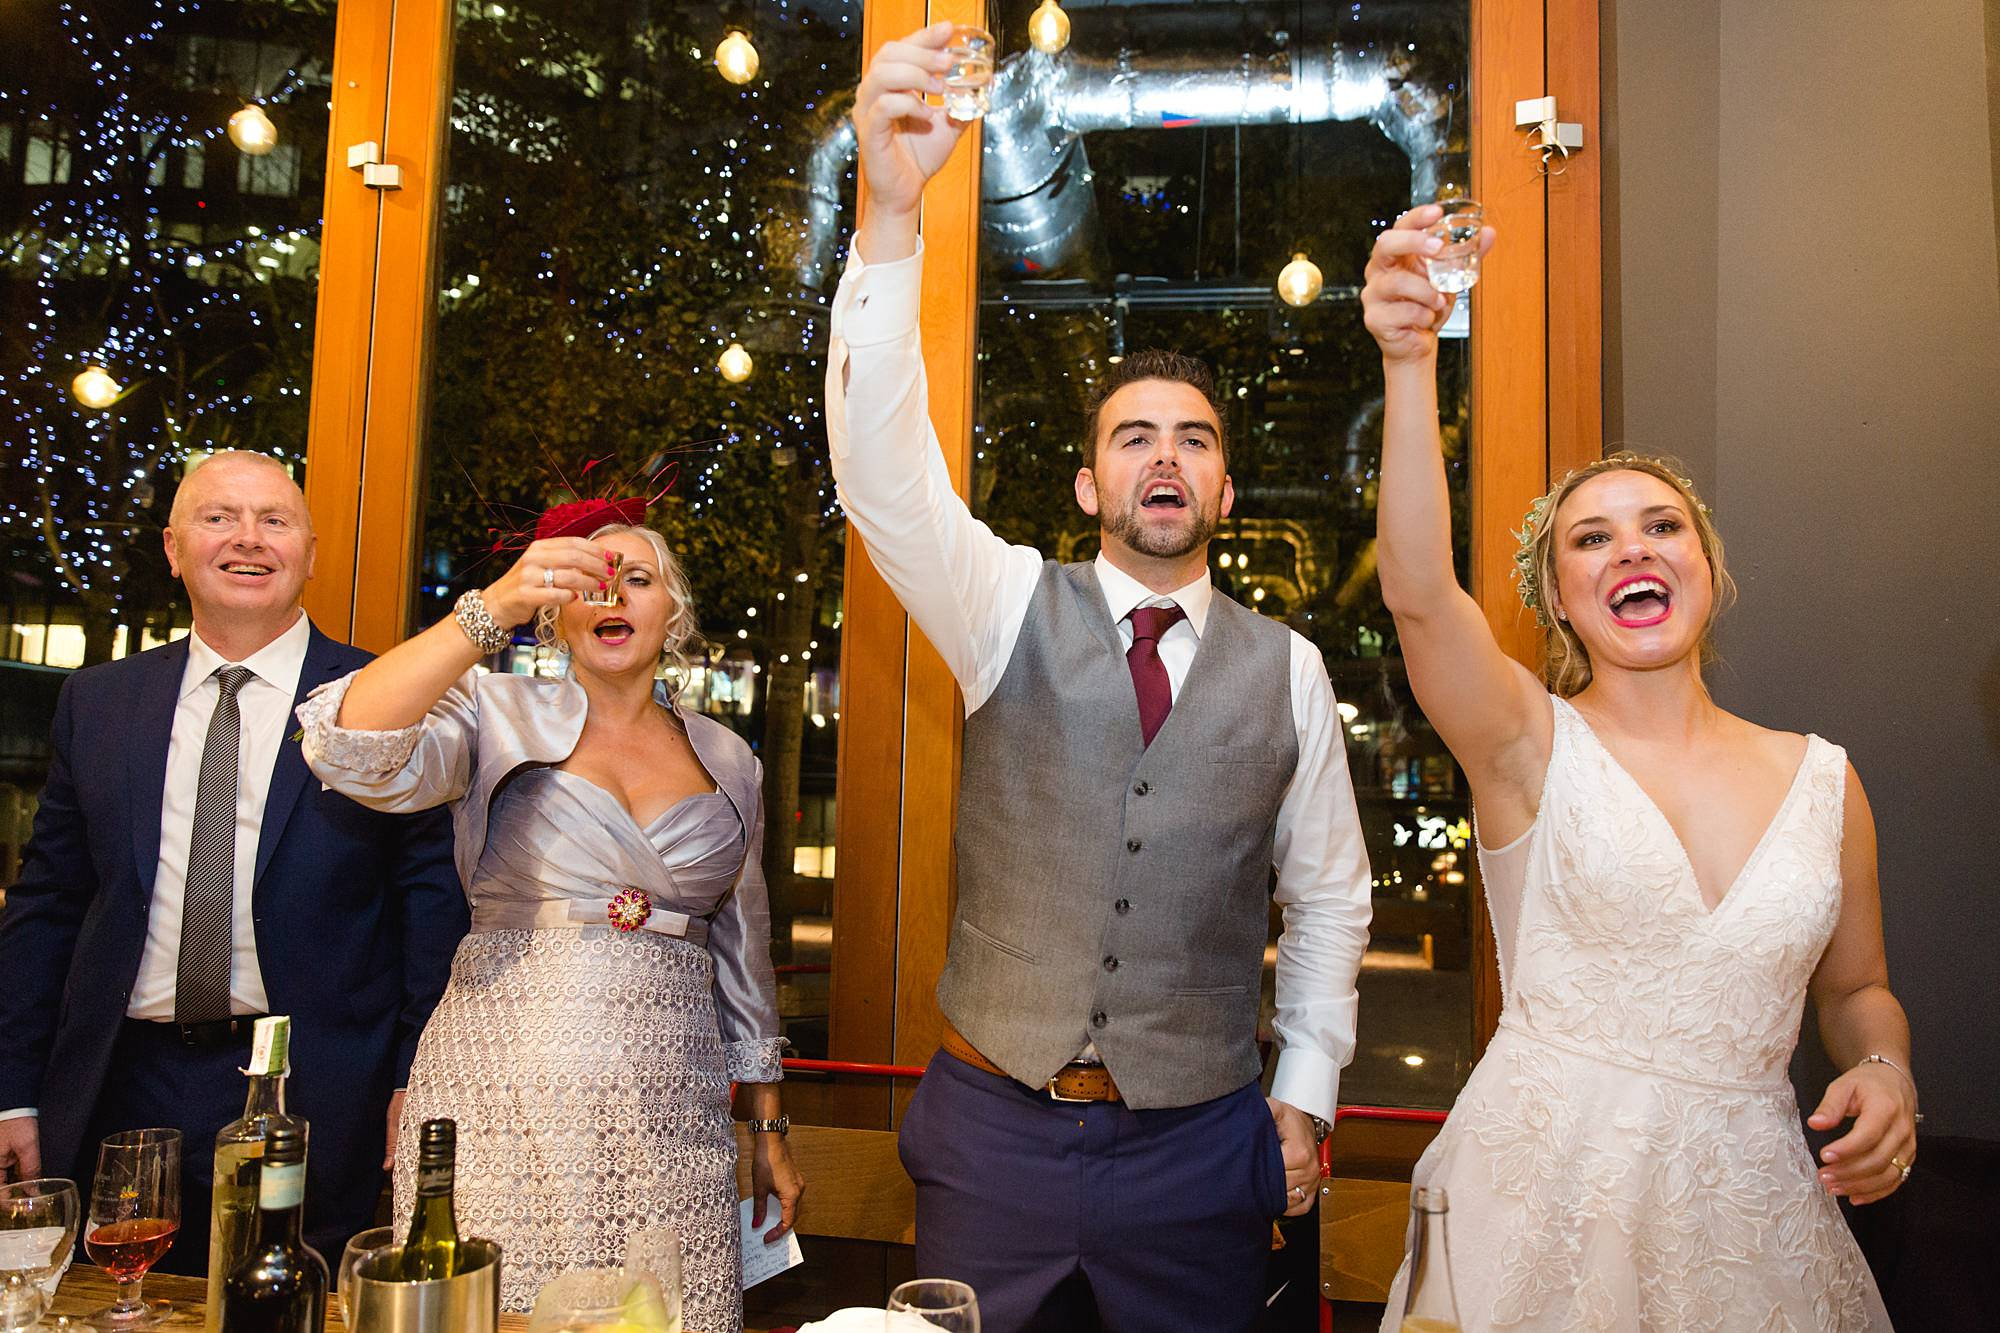 bride, groom and groom's mother toast speeches with a shot